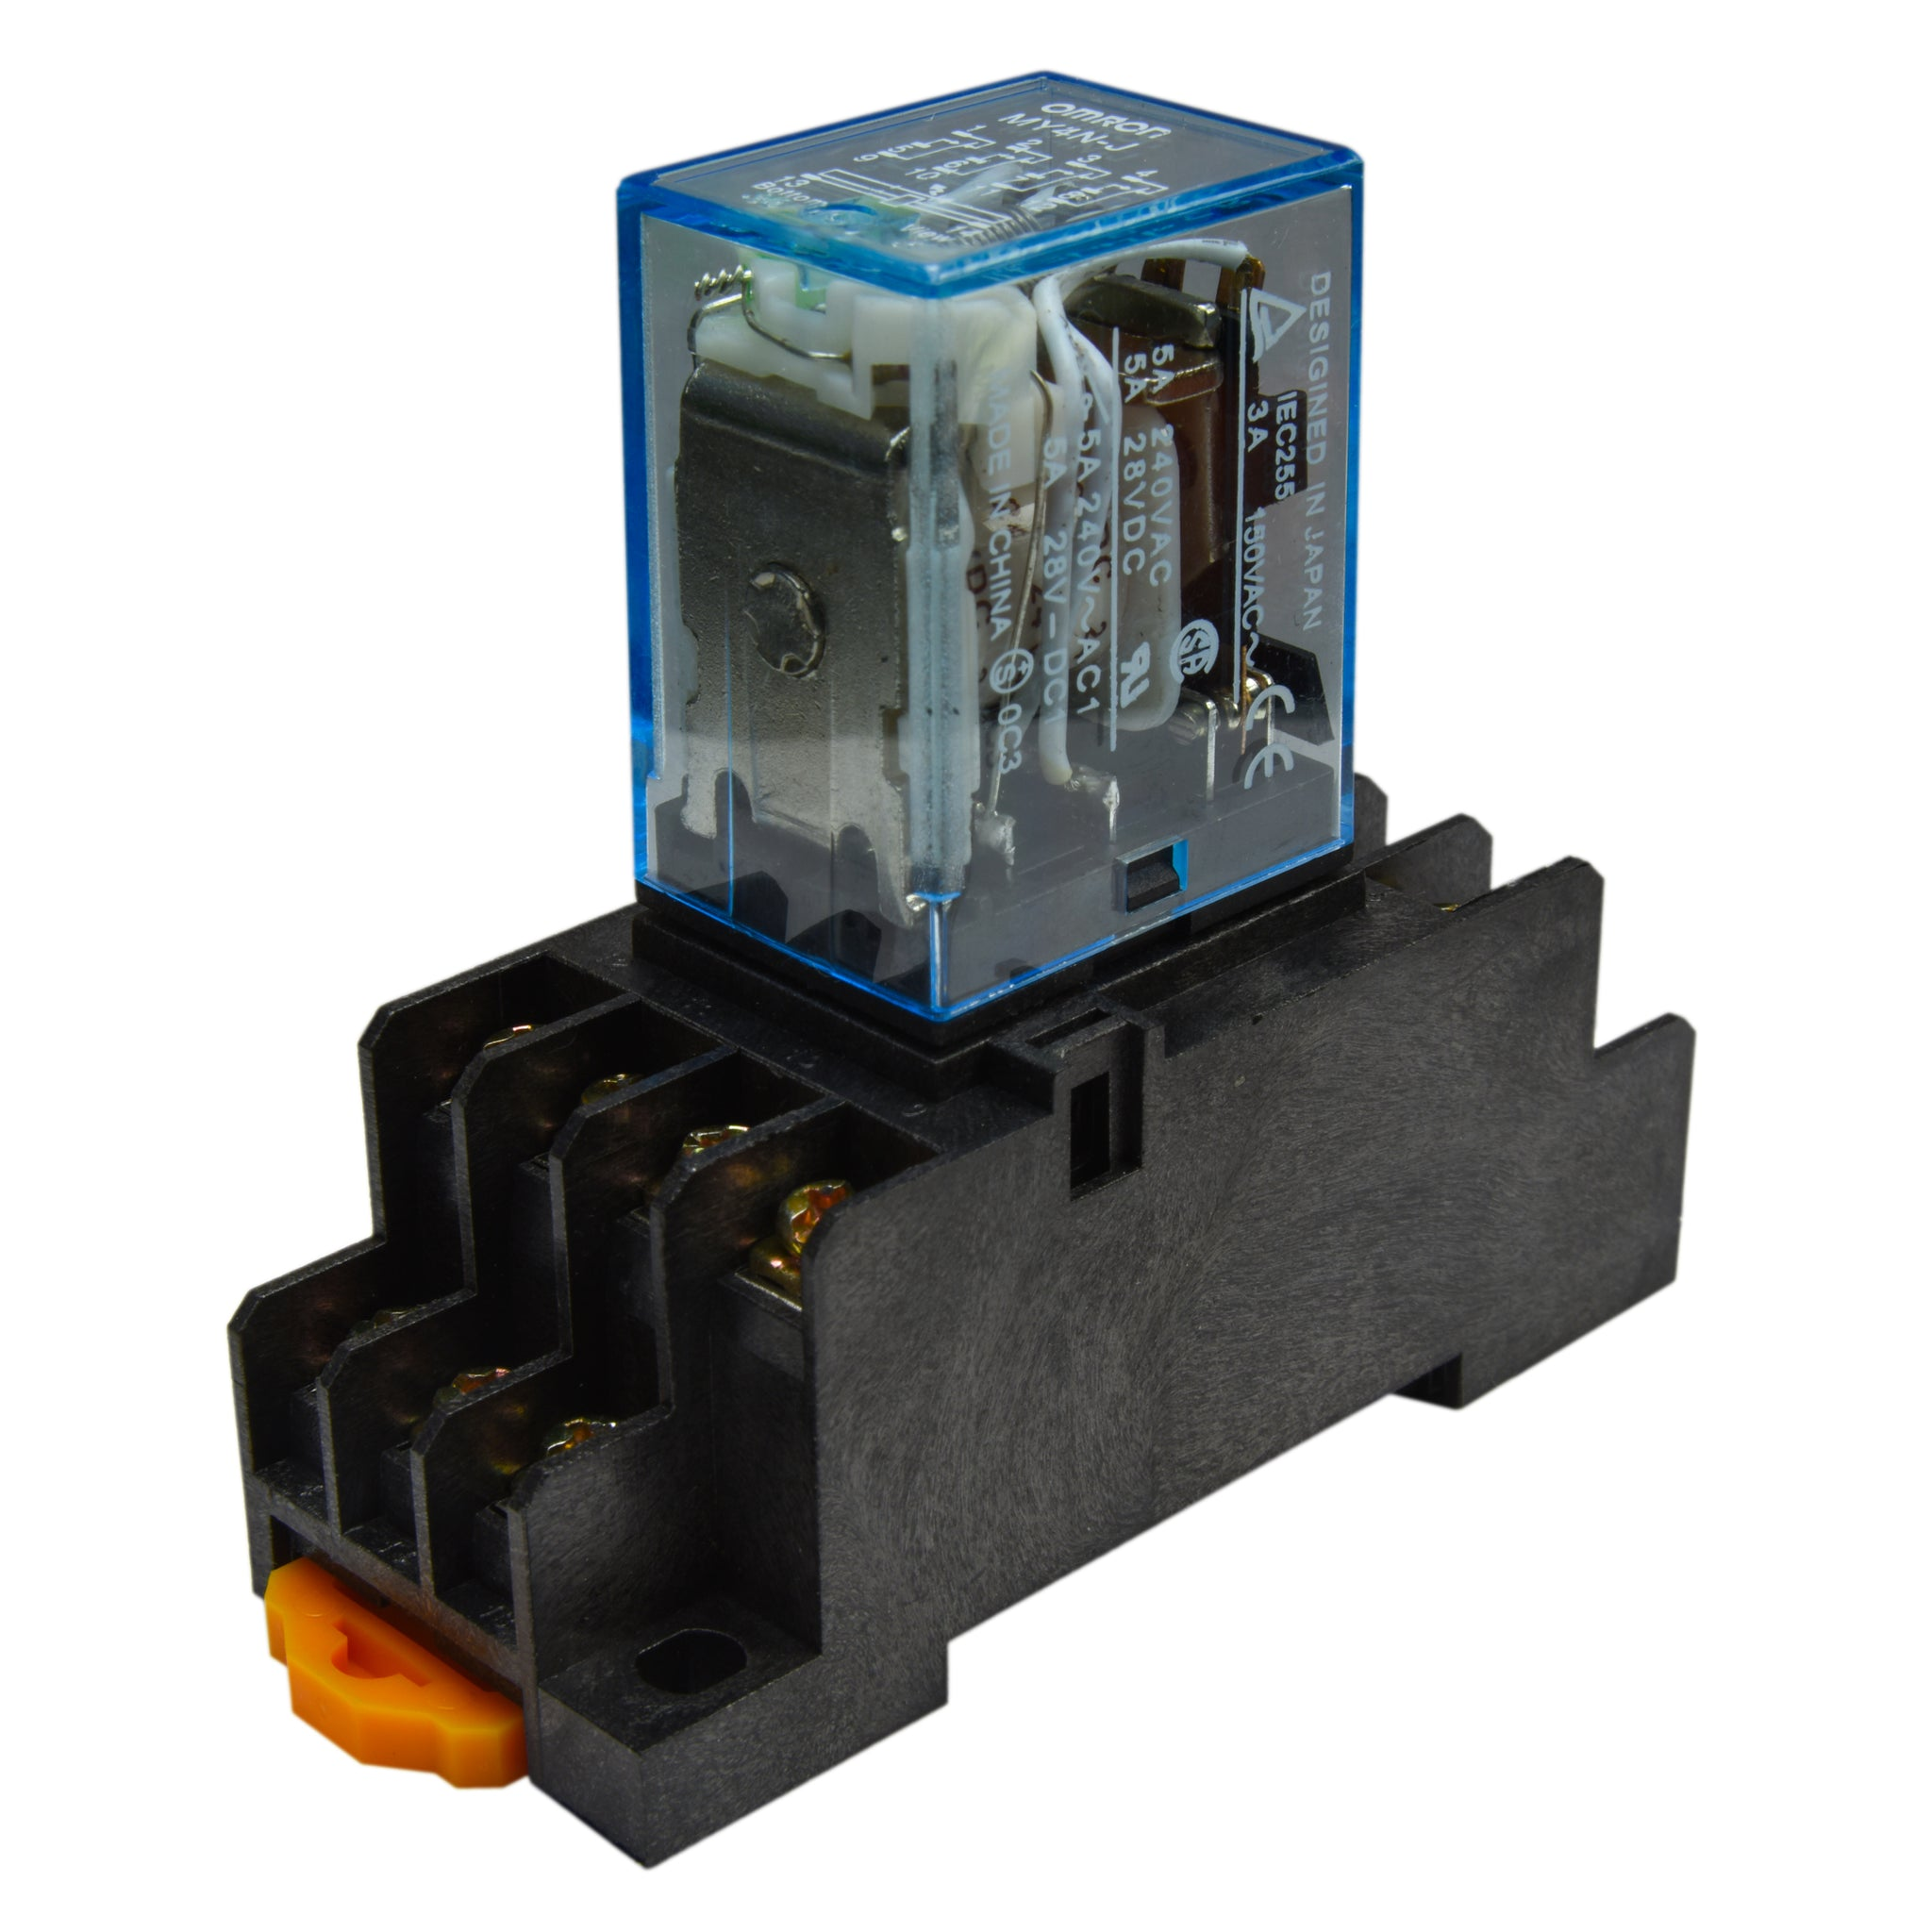 1 to 10 PCs) Omron MY4N-J (24V D/C Coil) 5A Cube Relay with ... Omron Iec Relay Wiring Diagram on